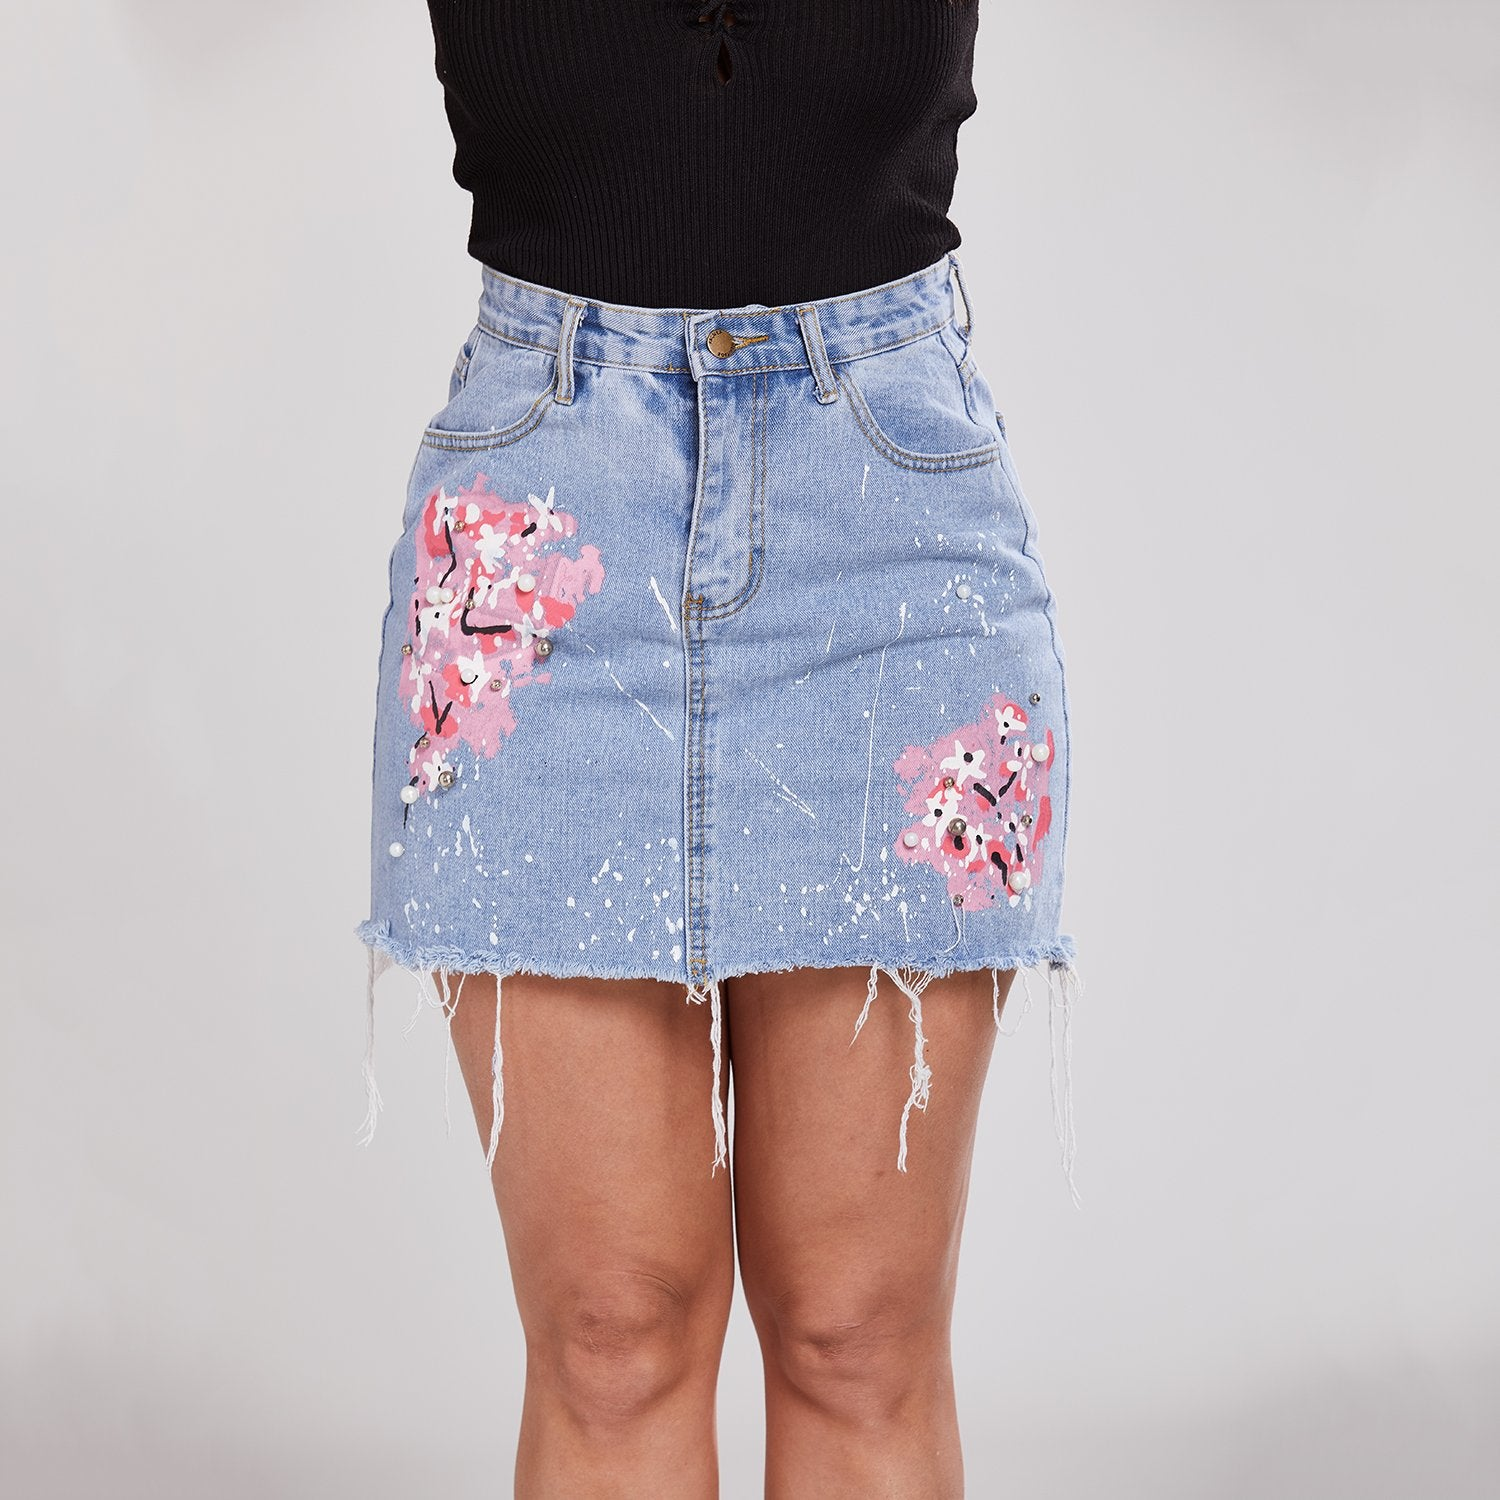 Button Down Front Denim Short Skirt